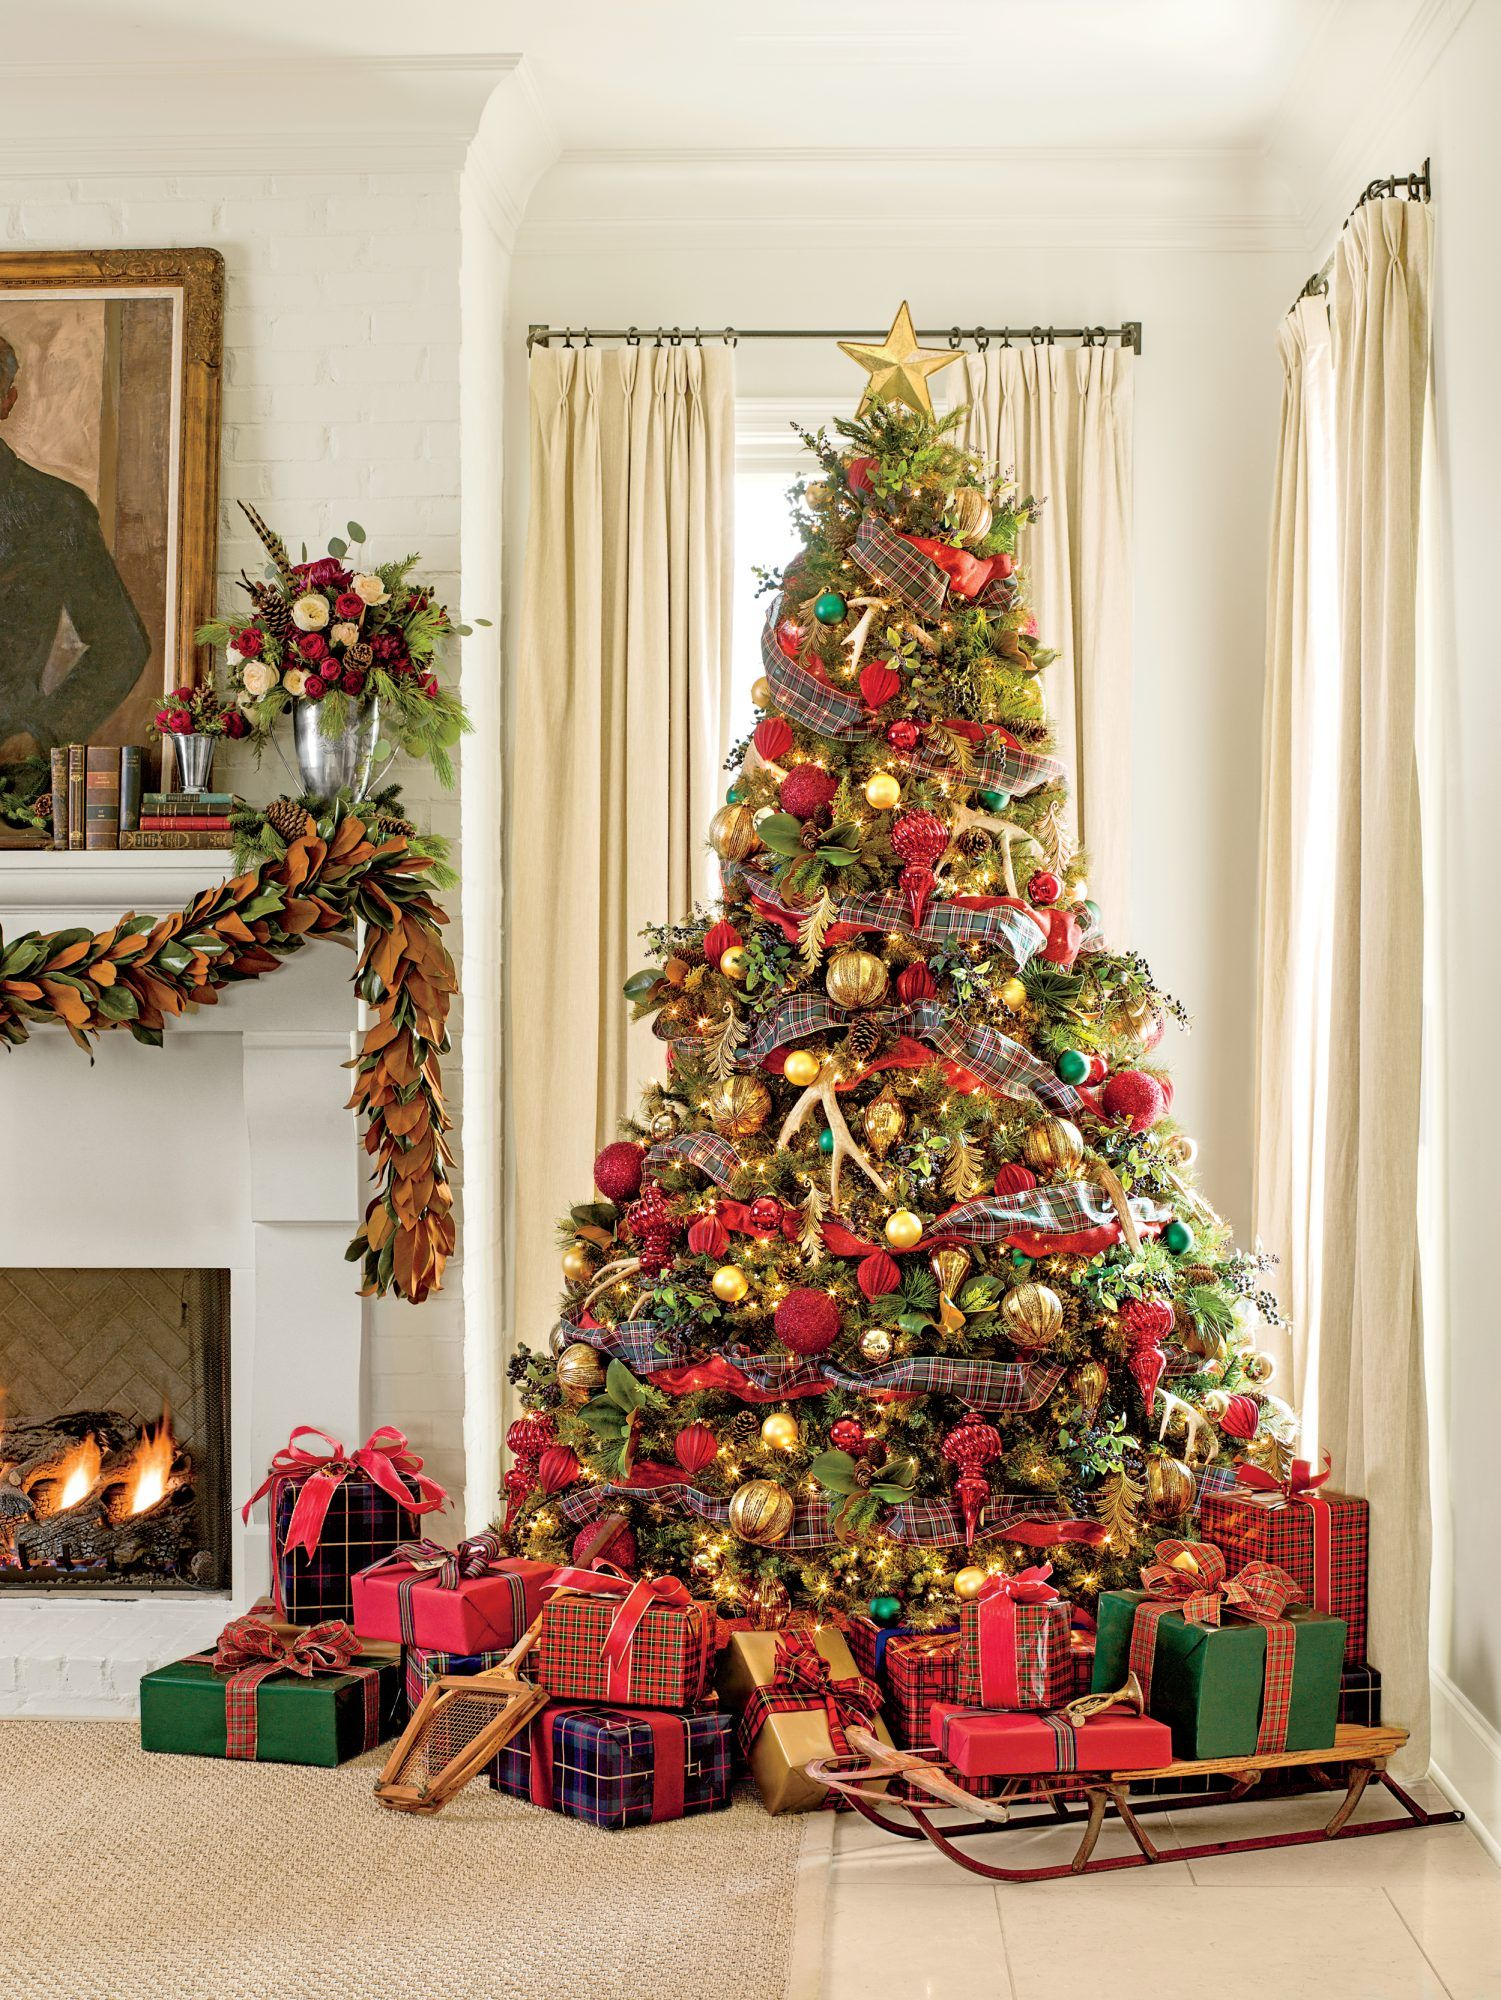 100 Best Ever Christmas Decorating Ideas Peacock Christmas Tree Holiday Decor Christmas Holiday Decor